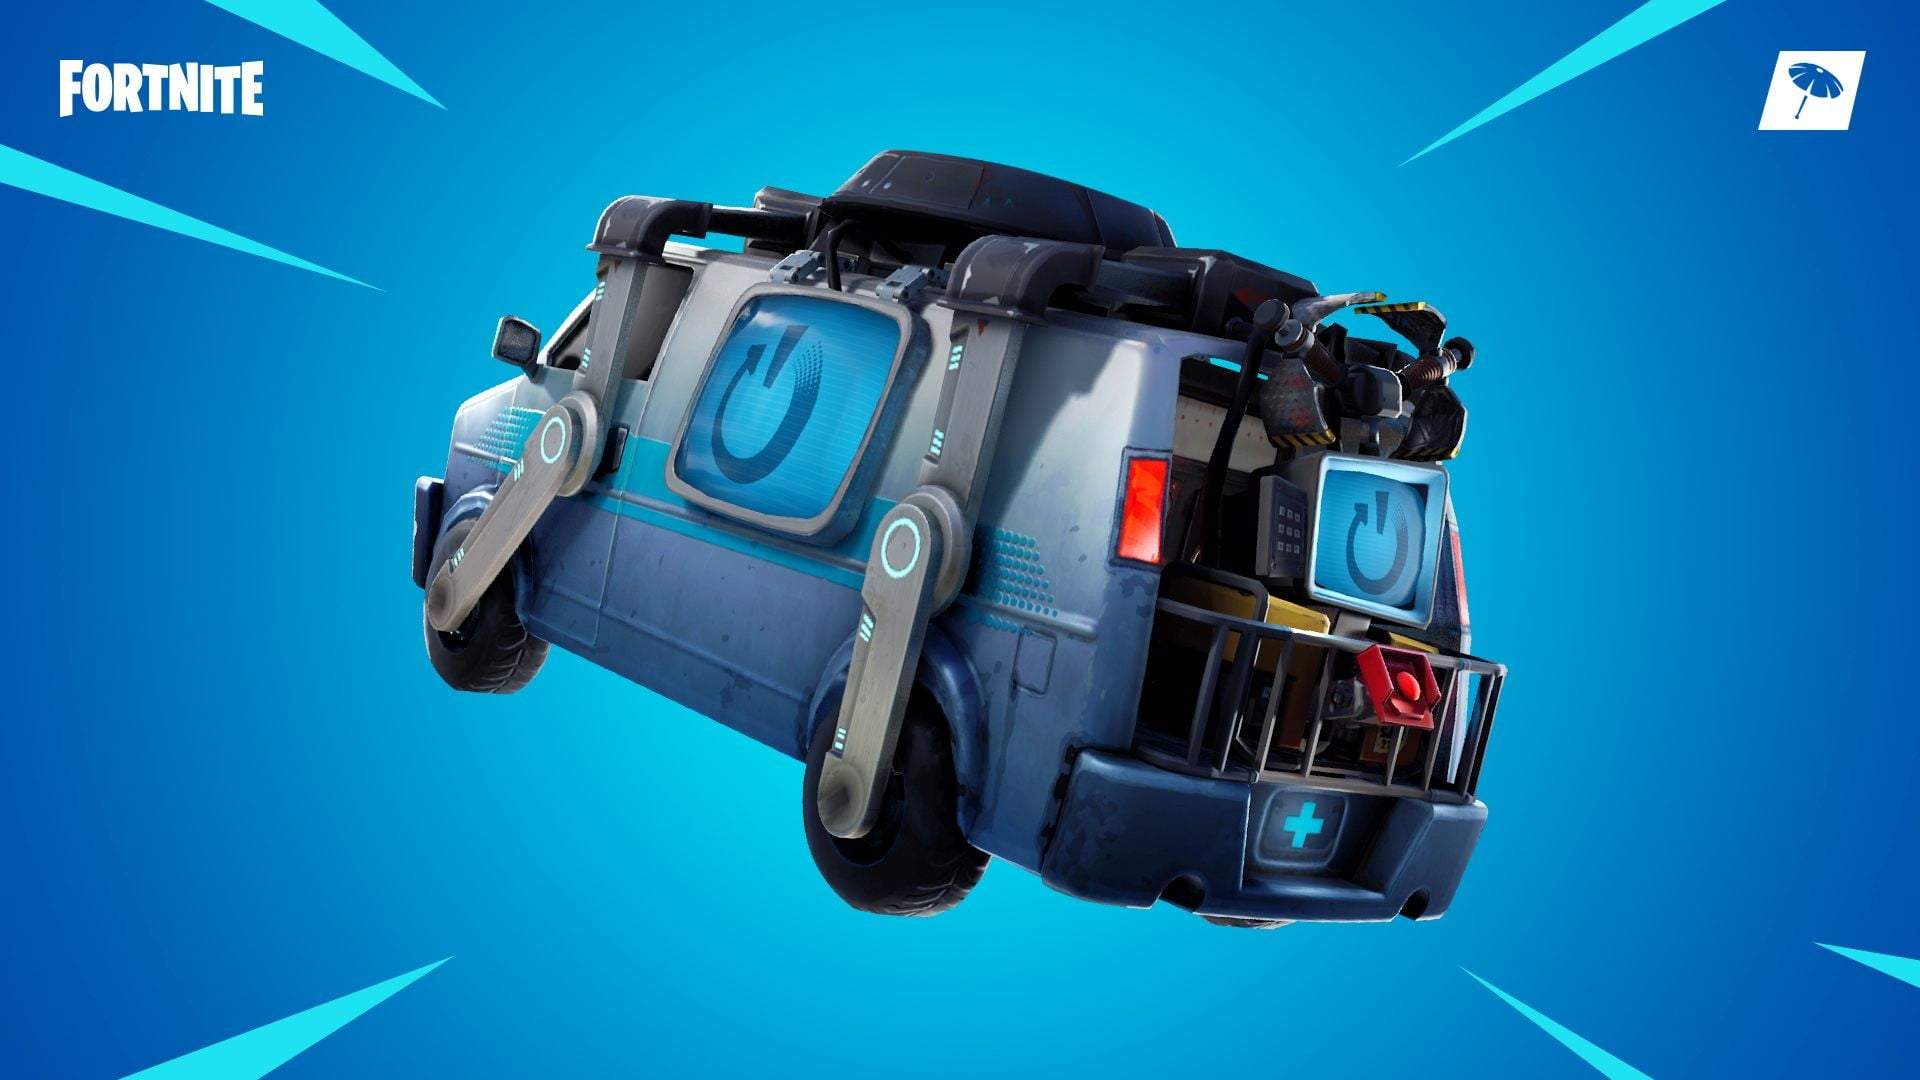 Fortnite Update 8 30 Adds Teammate Revival with New Reboot